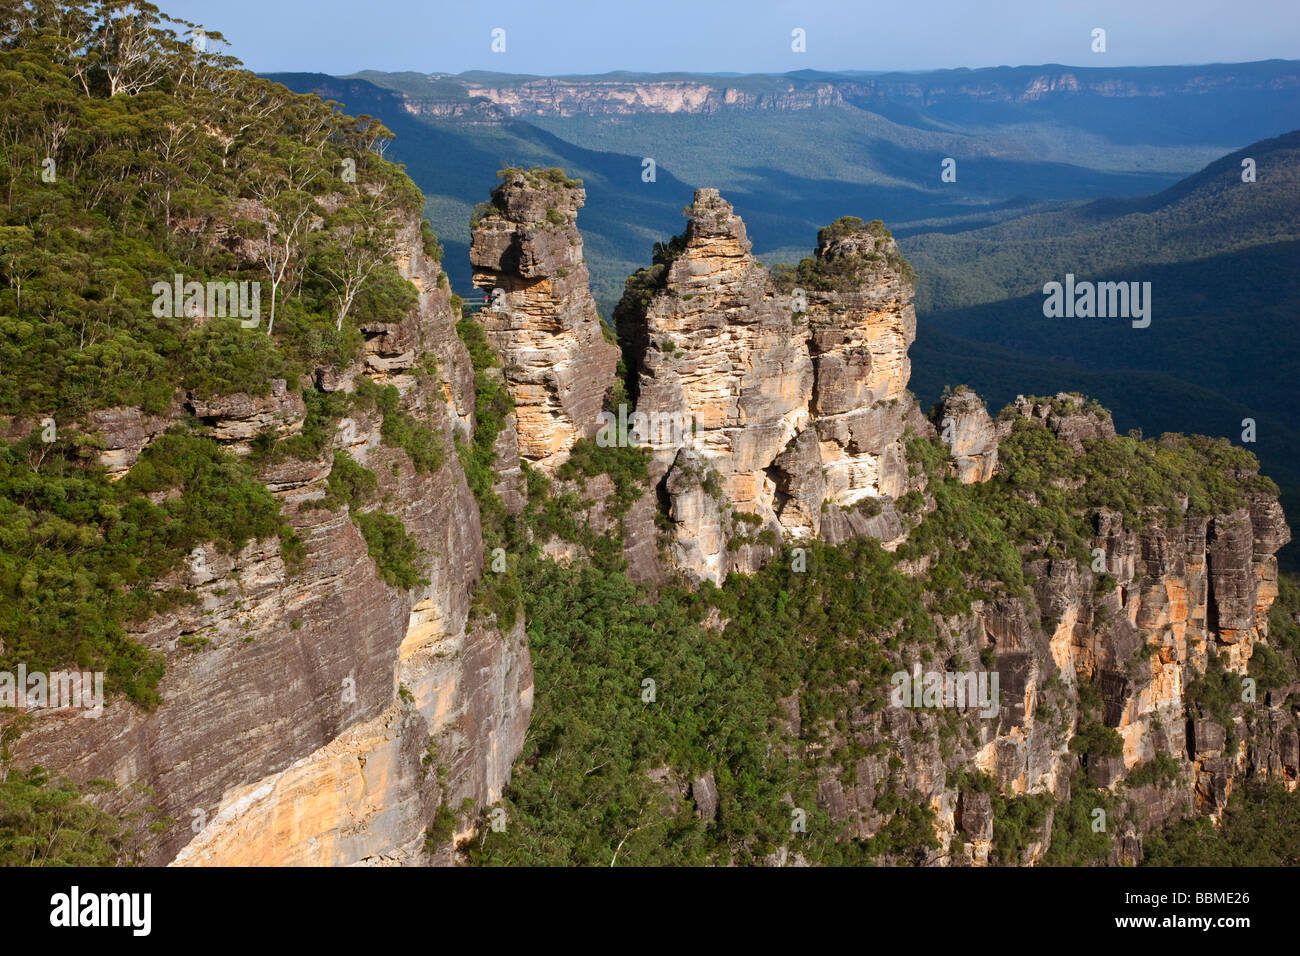 Australia New South Wales. The famous   Three Sisters   rock formation in the Blue Mountains near Katoomba. - Stock Image